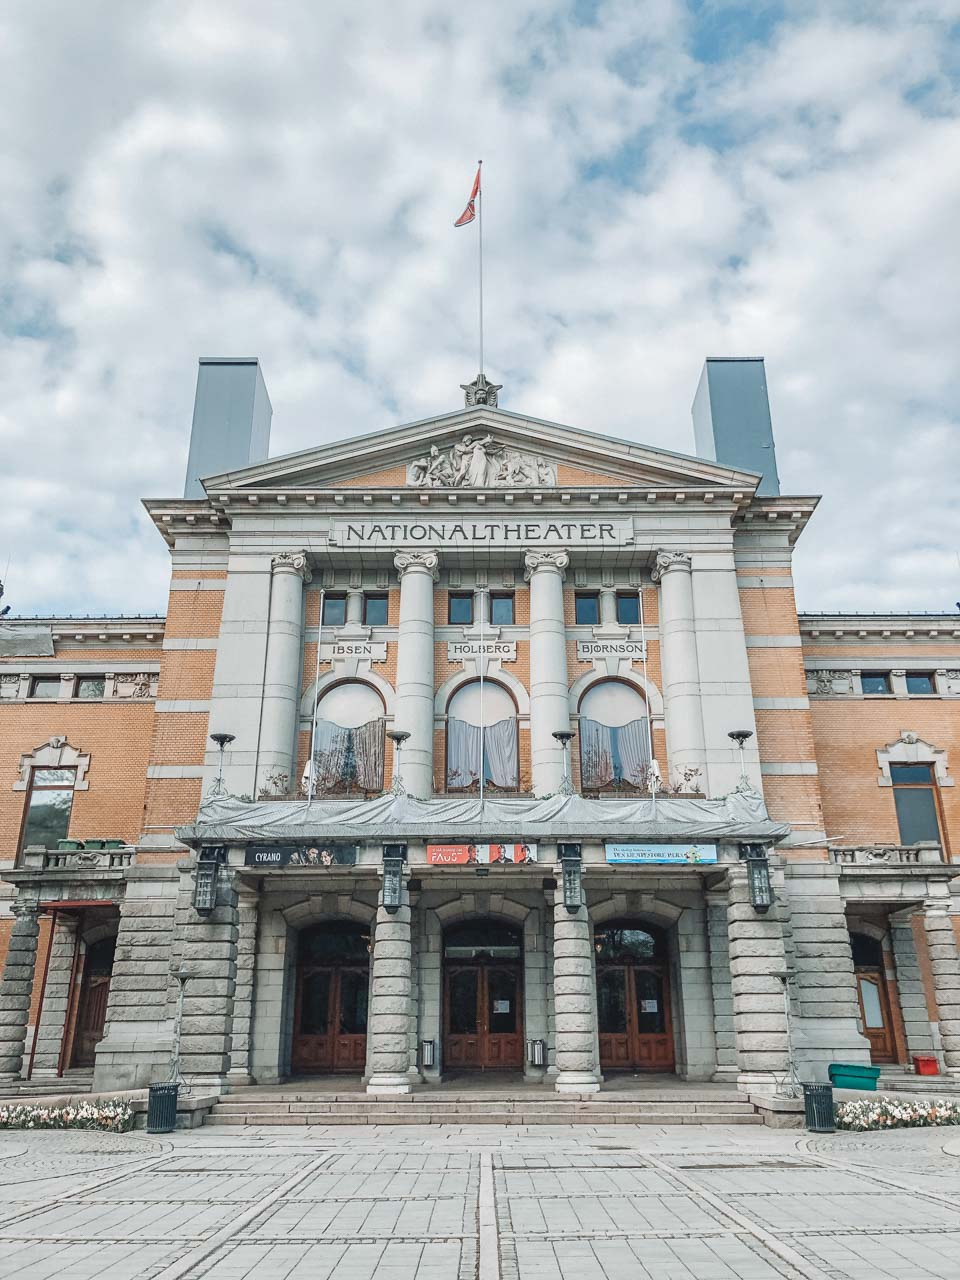 The National Theatre building in Oslo, Norway